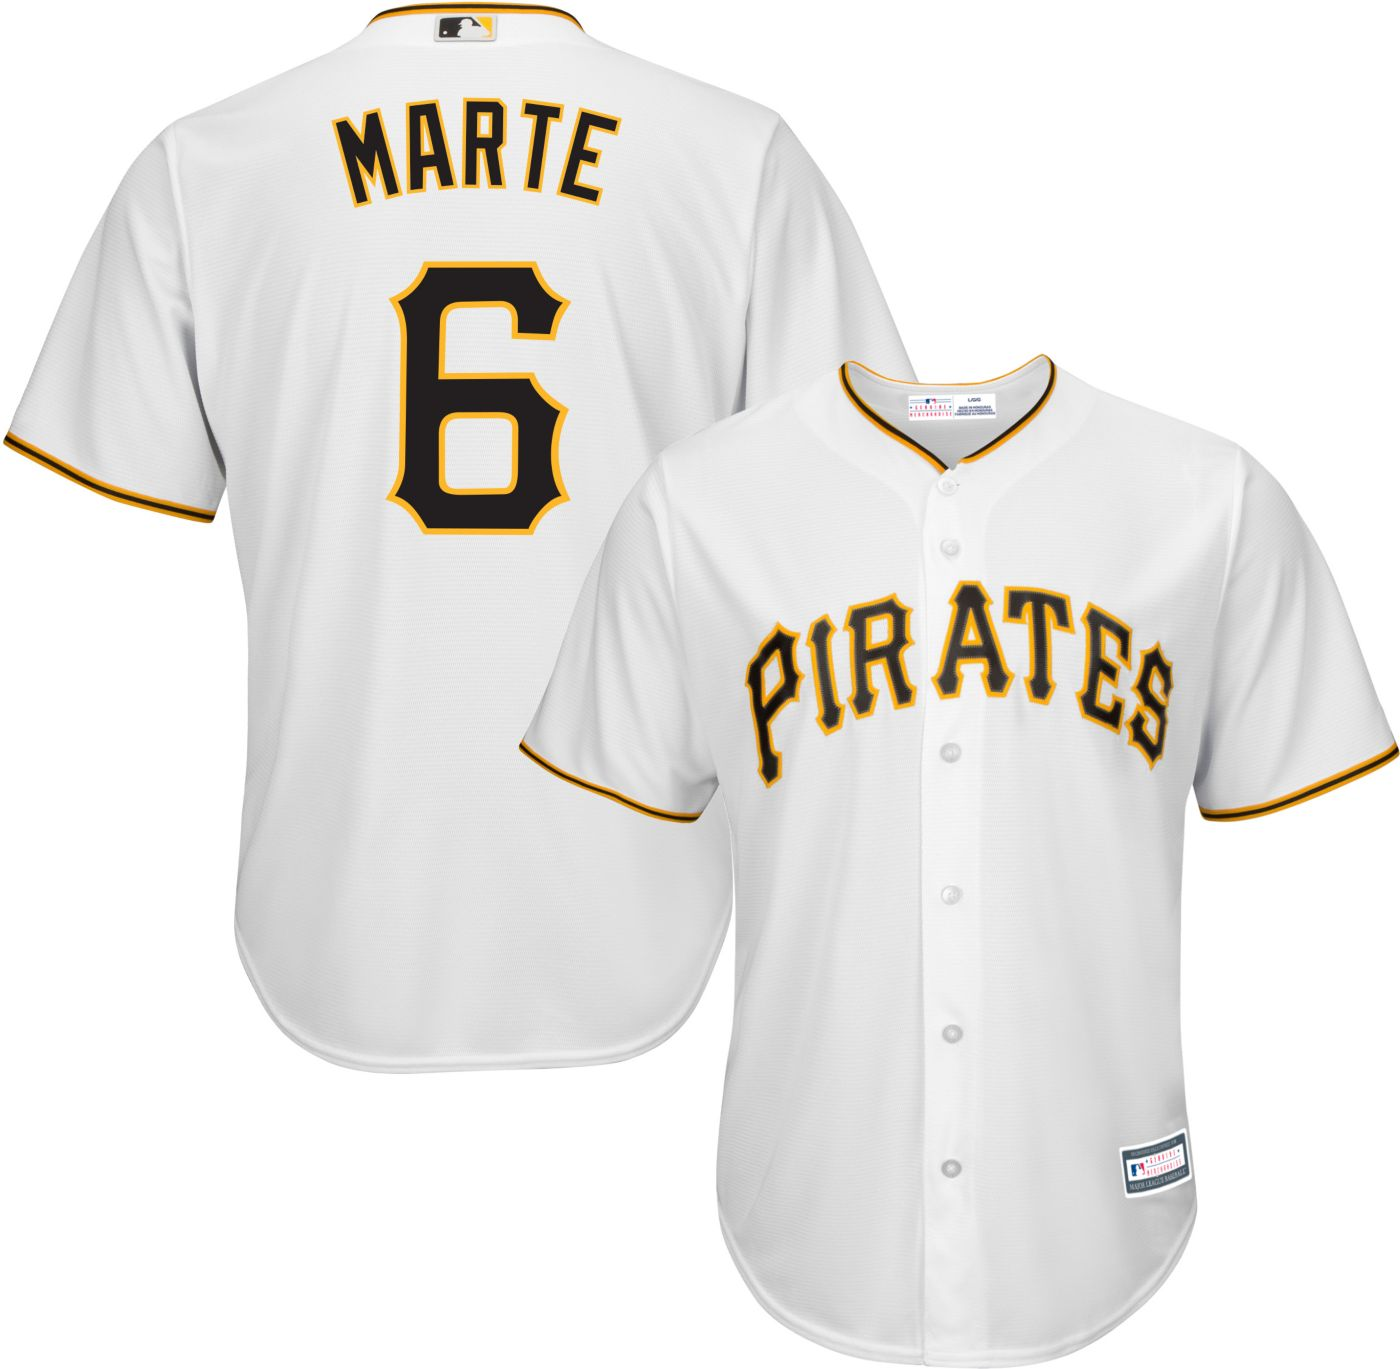 Youth Replica Pittsburgh Pirates Starling Marte #6 Home White Jersey